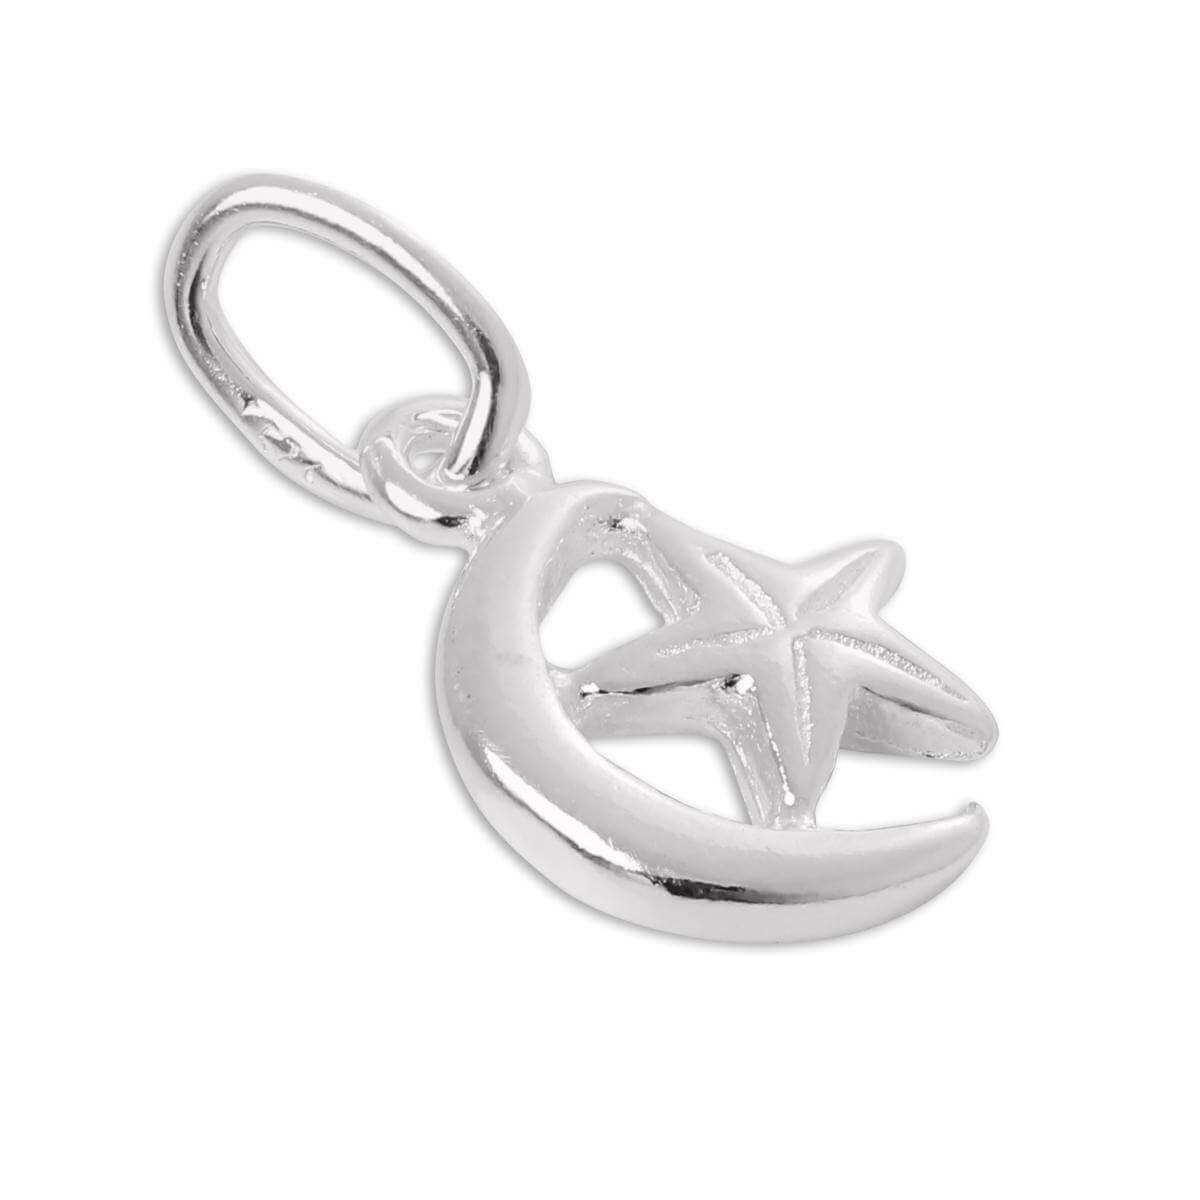 Tiny Sterling Silver Crescent Moon & Star Charm